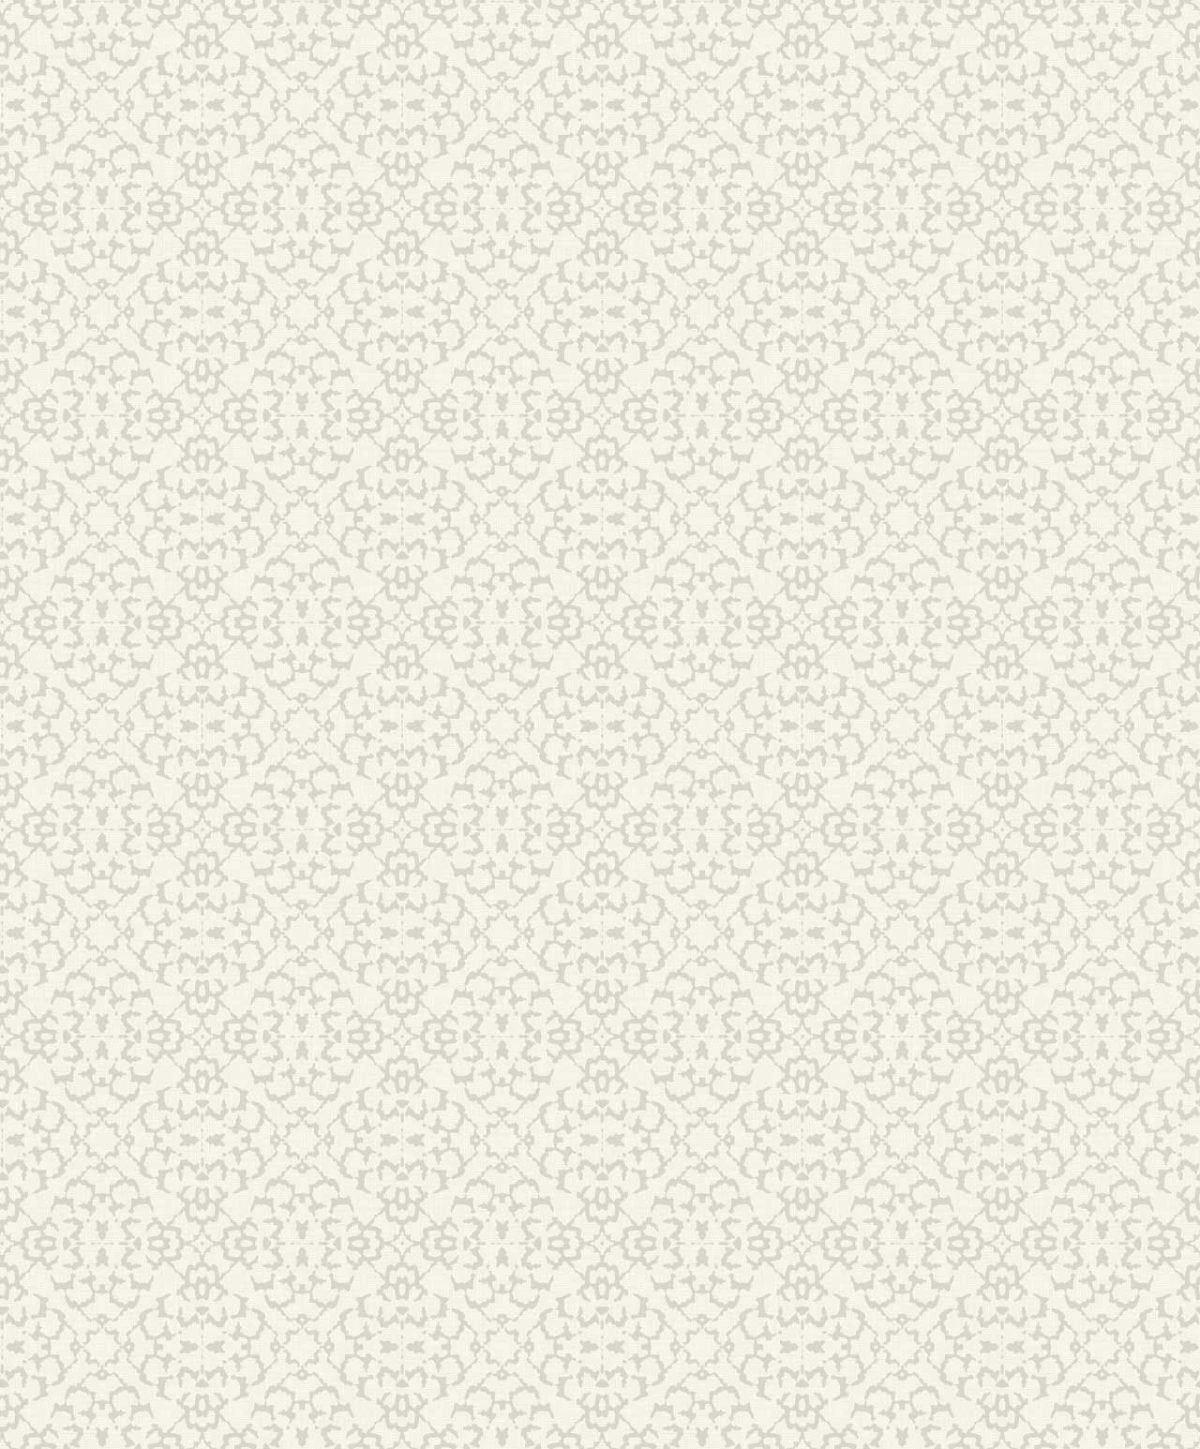 Sloan-Luxury-Wallpaper-SL00812-FABRIC-DIAMOND